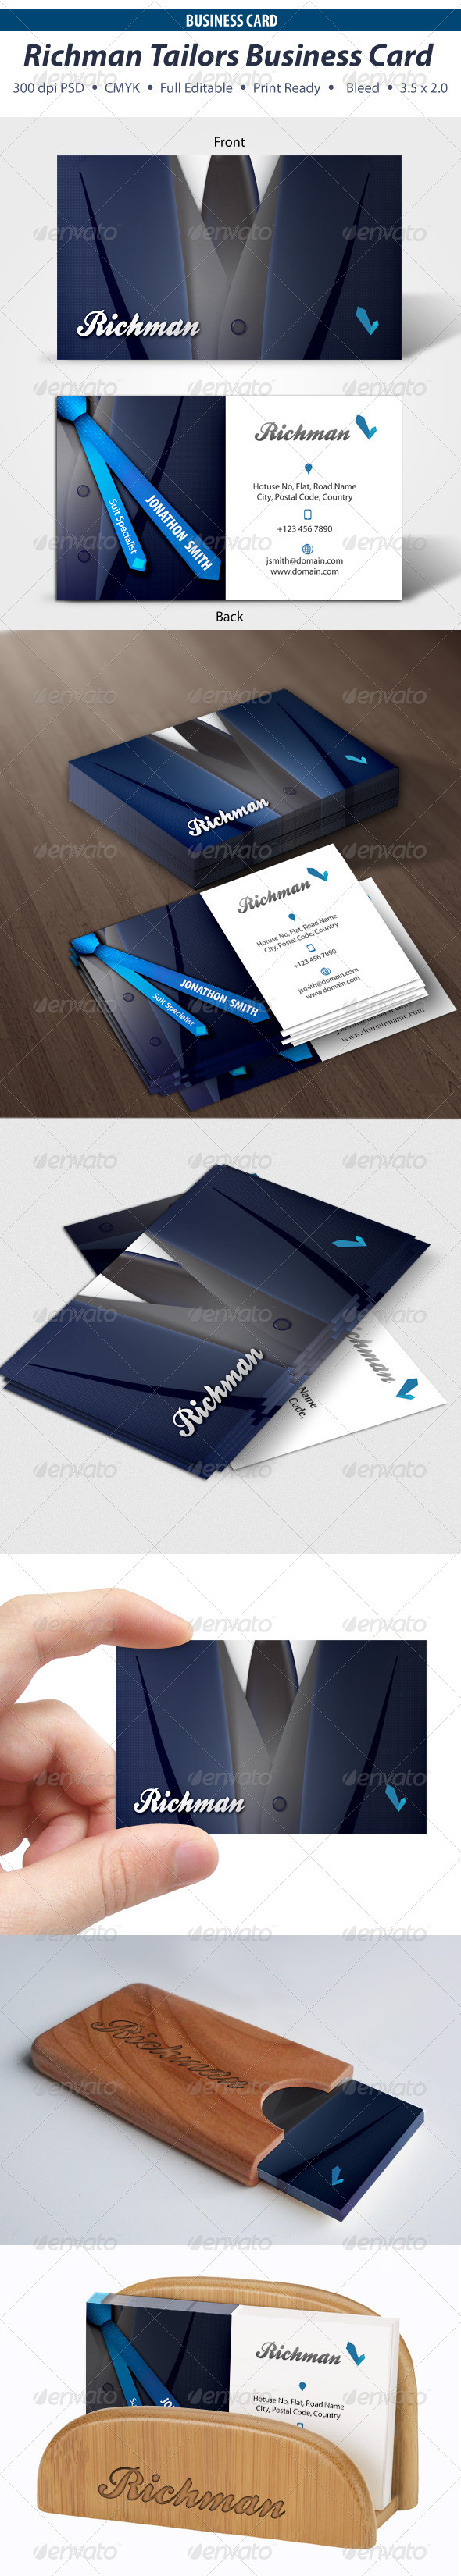 GraphicRiver Richman Tailors Business Card 3900874